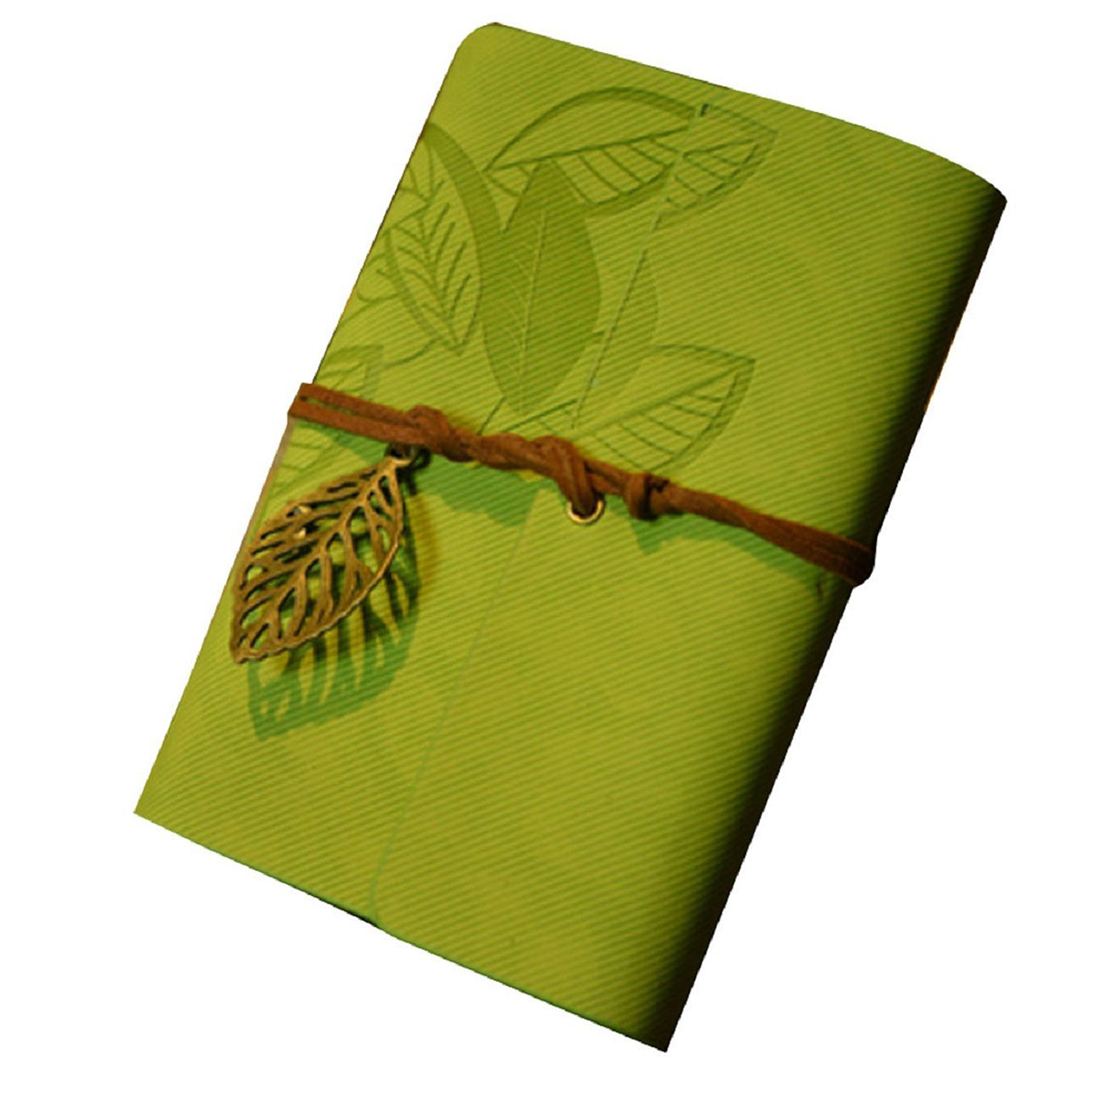 Cover page designs for school projects note book cover page design - Affordable Vintage Design Notebook Leather Cover With Strap And Accessories Leaf White Pages Diary Notebook Note